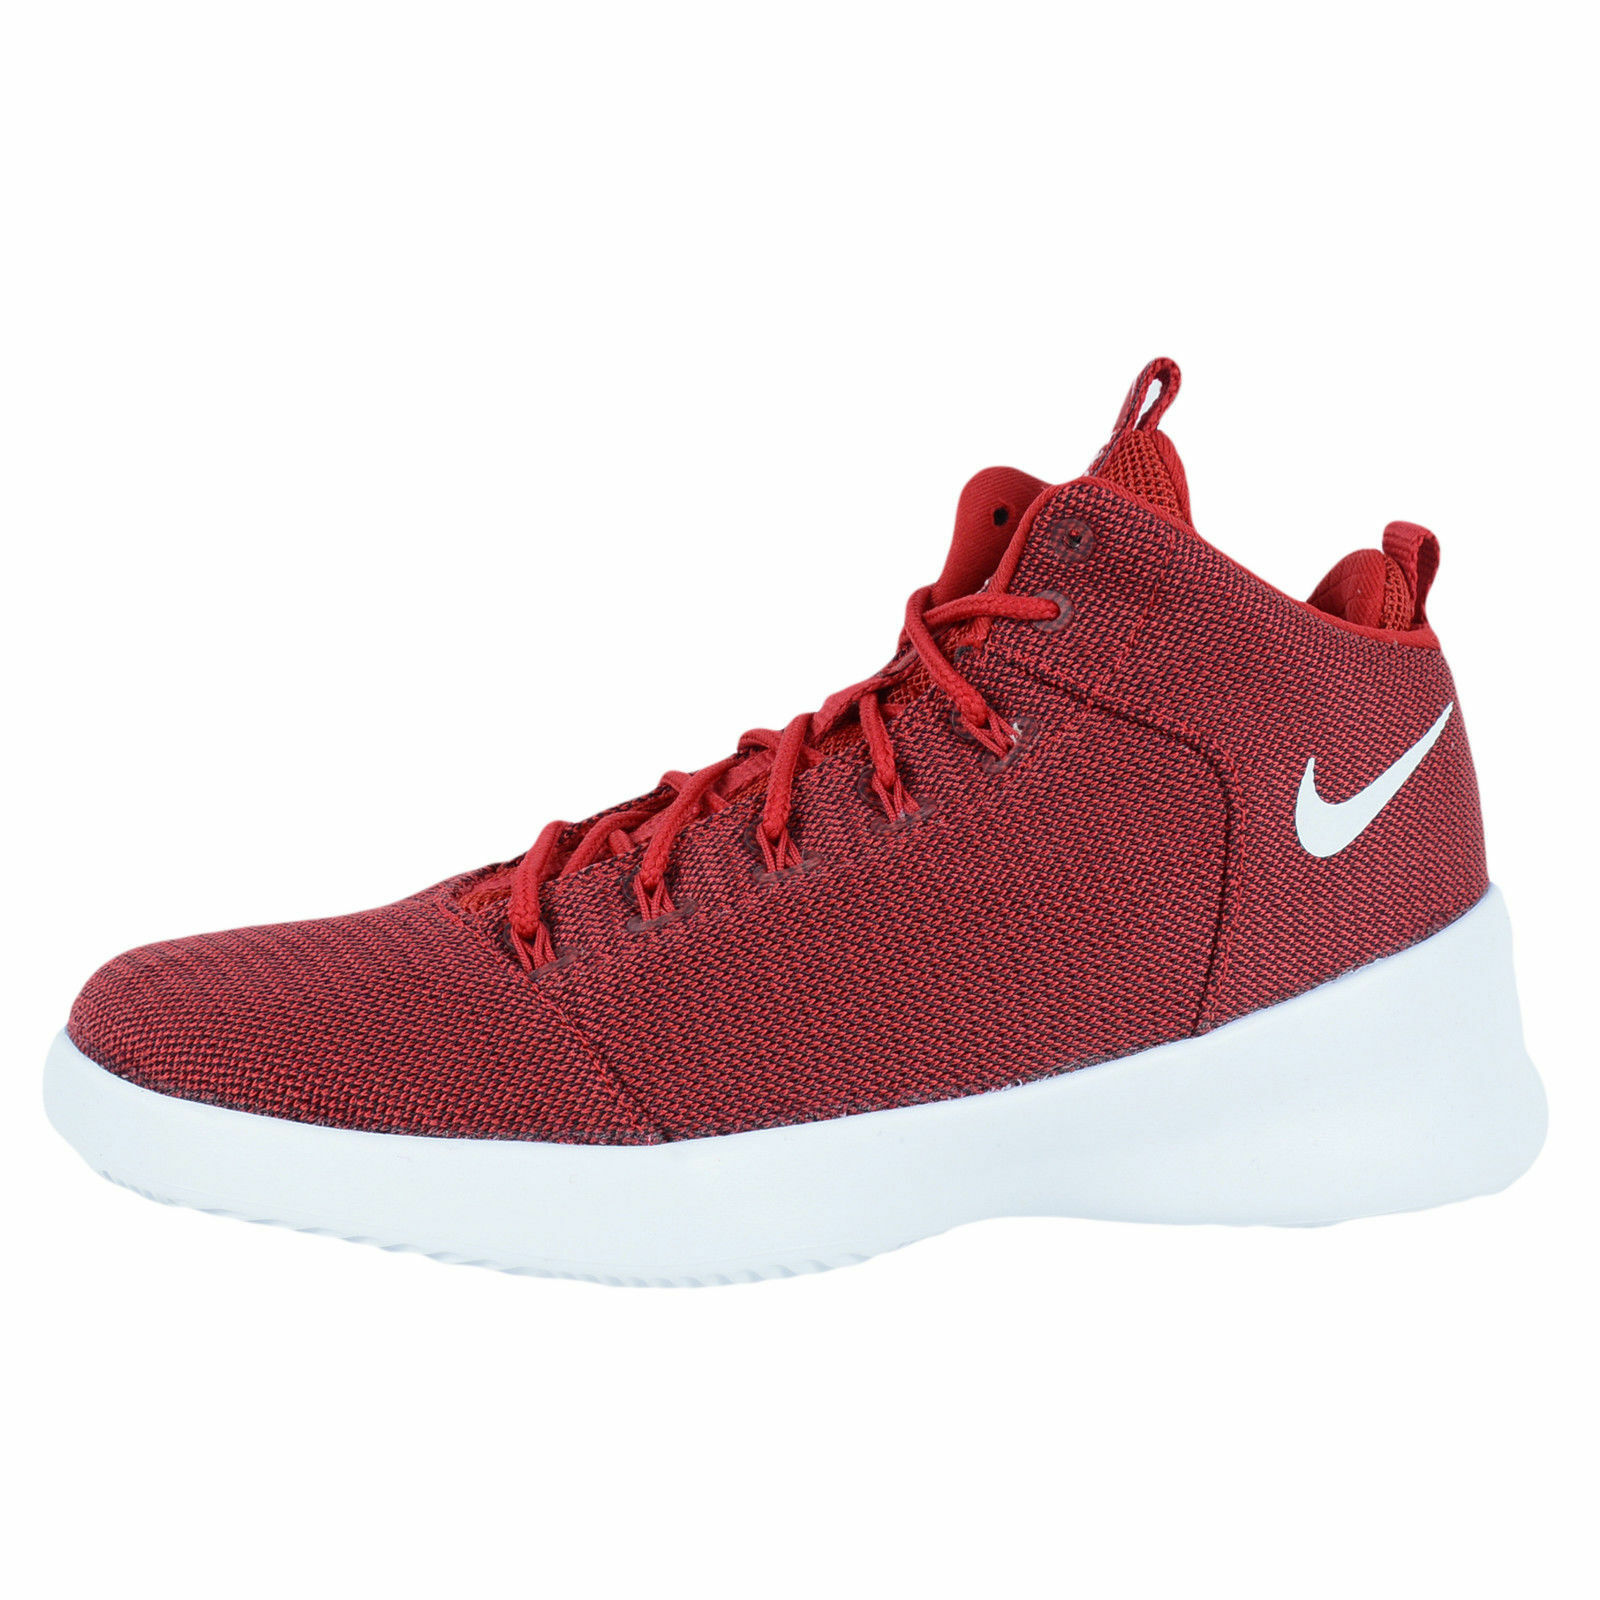 MENS NIKE HYPERFR3SH BASKETBALL SHOES GYM RED SUMMIT WHITE 759996 601 SIZE 9.5